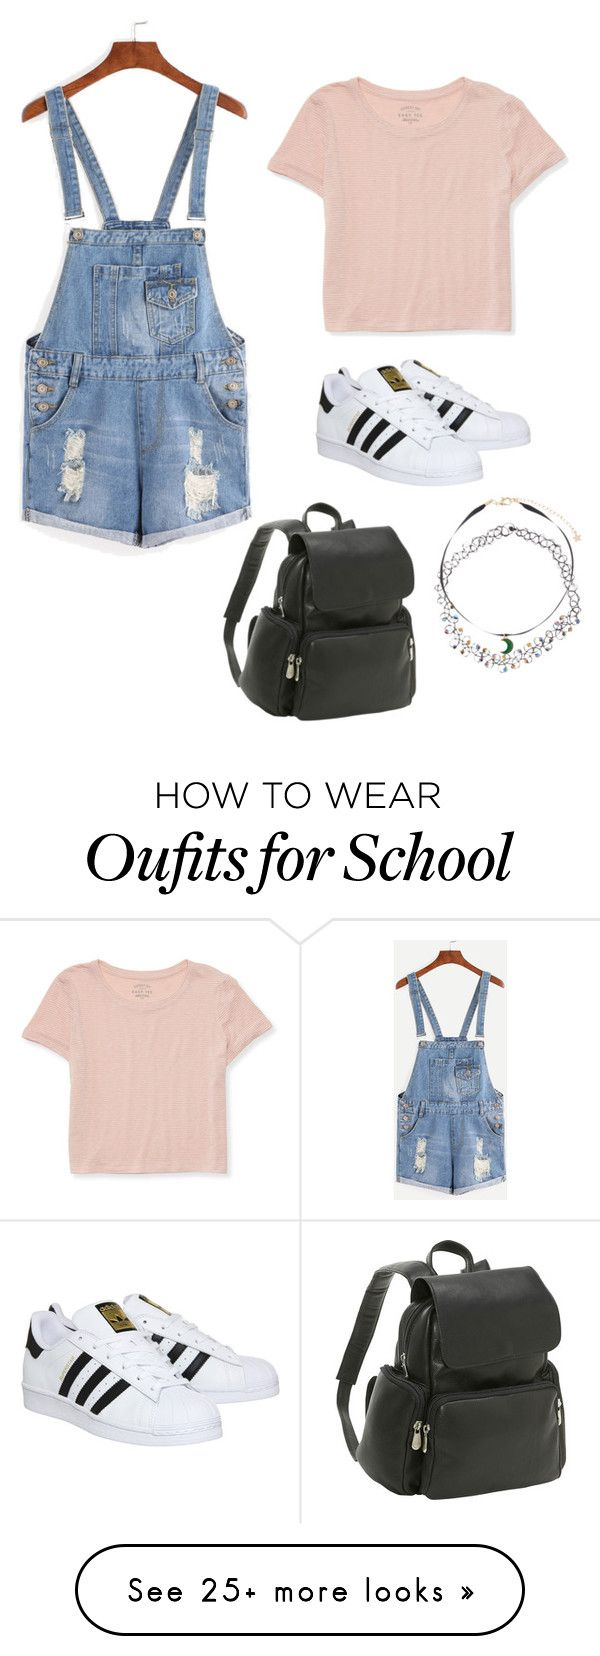 California School Day. by jordanhanlon on Polyvore featuring Aéropostale, adidas, Le Donne and Monsoon